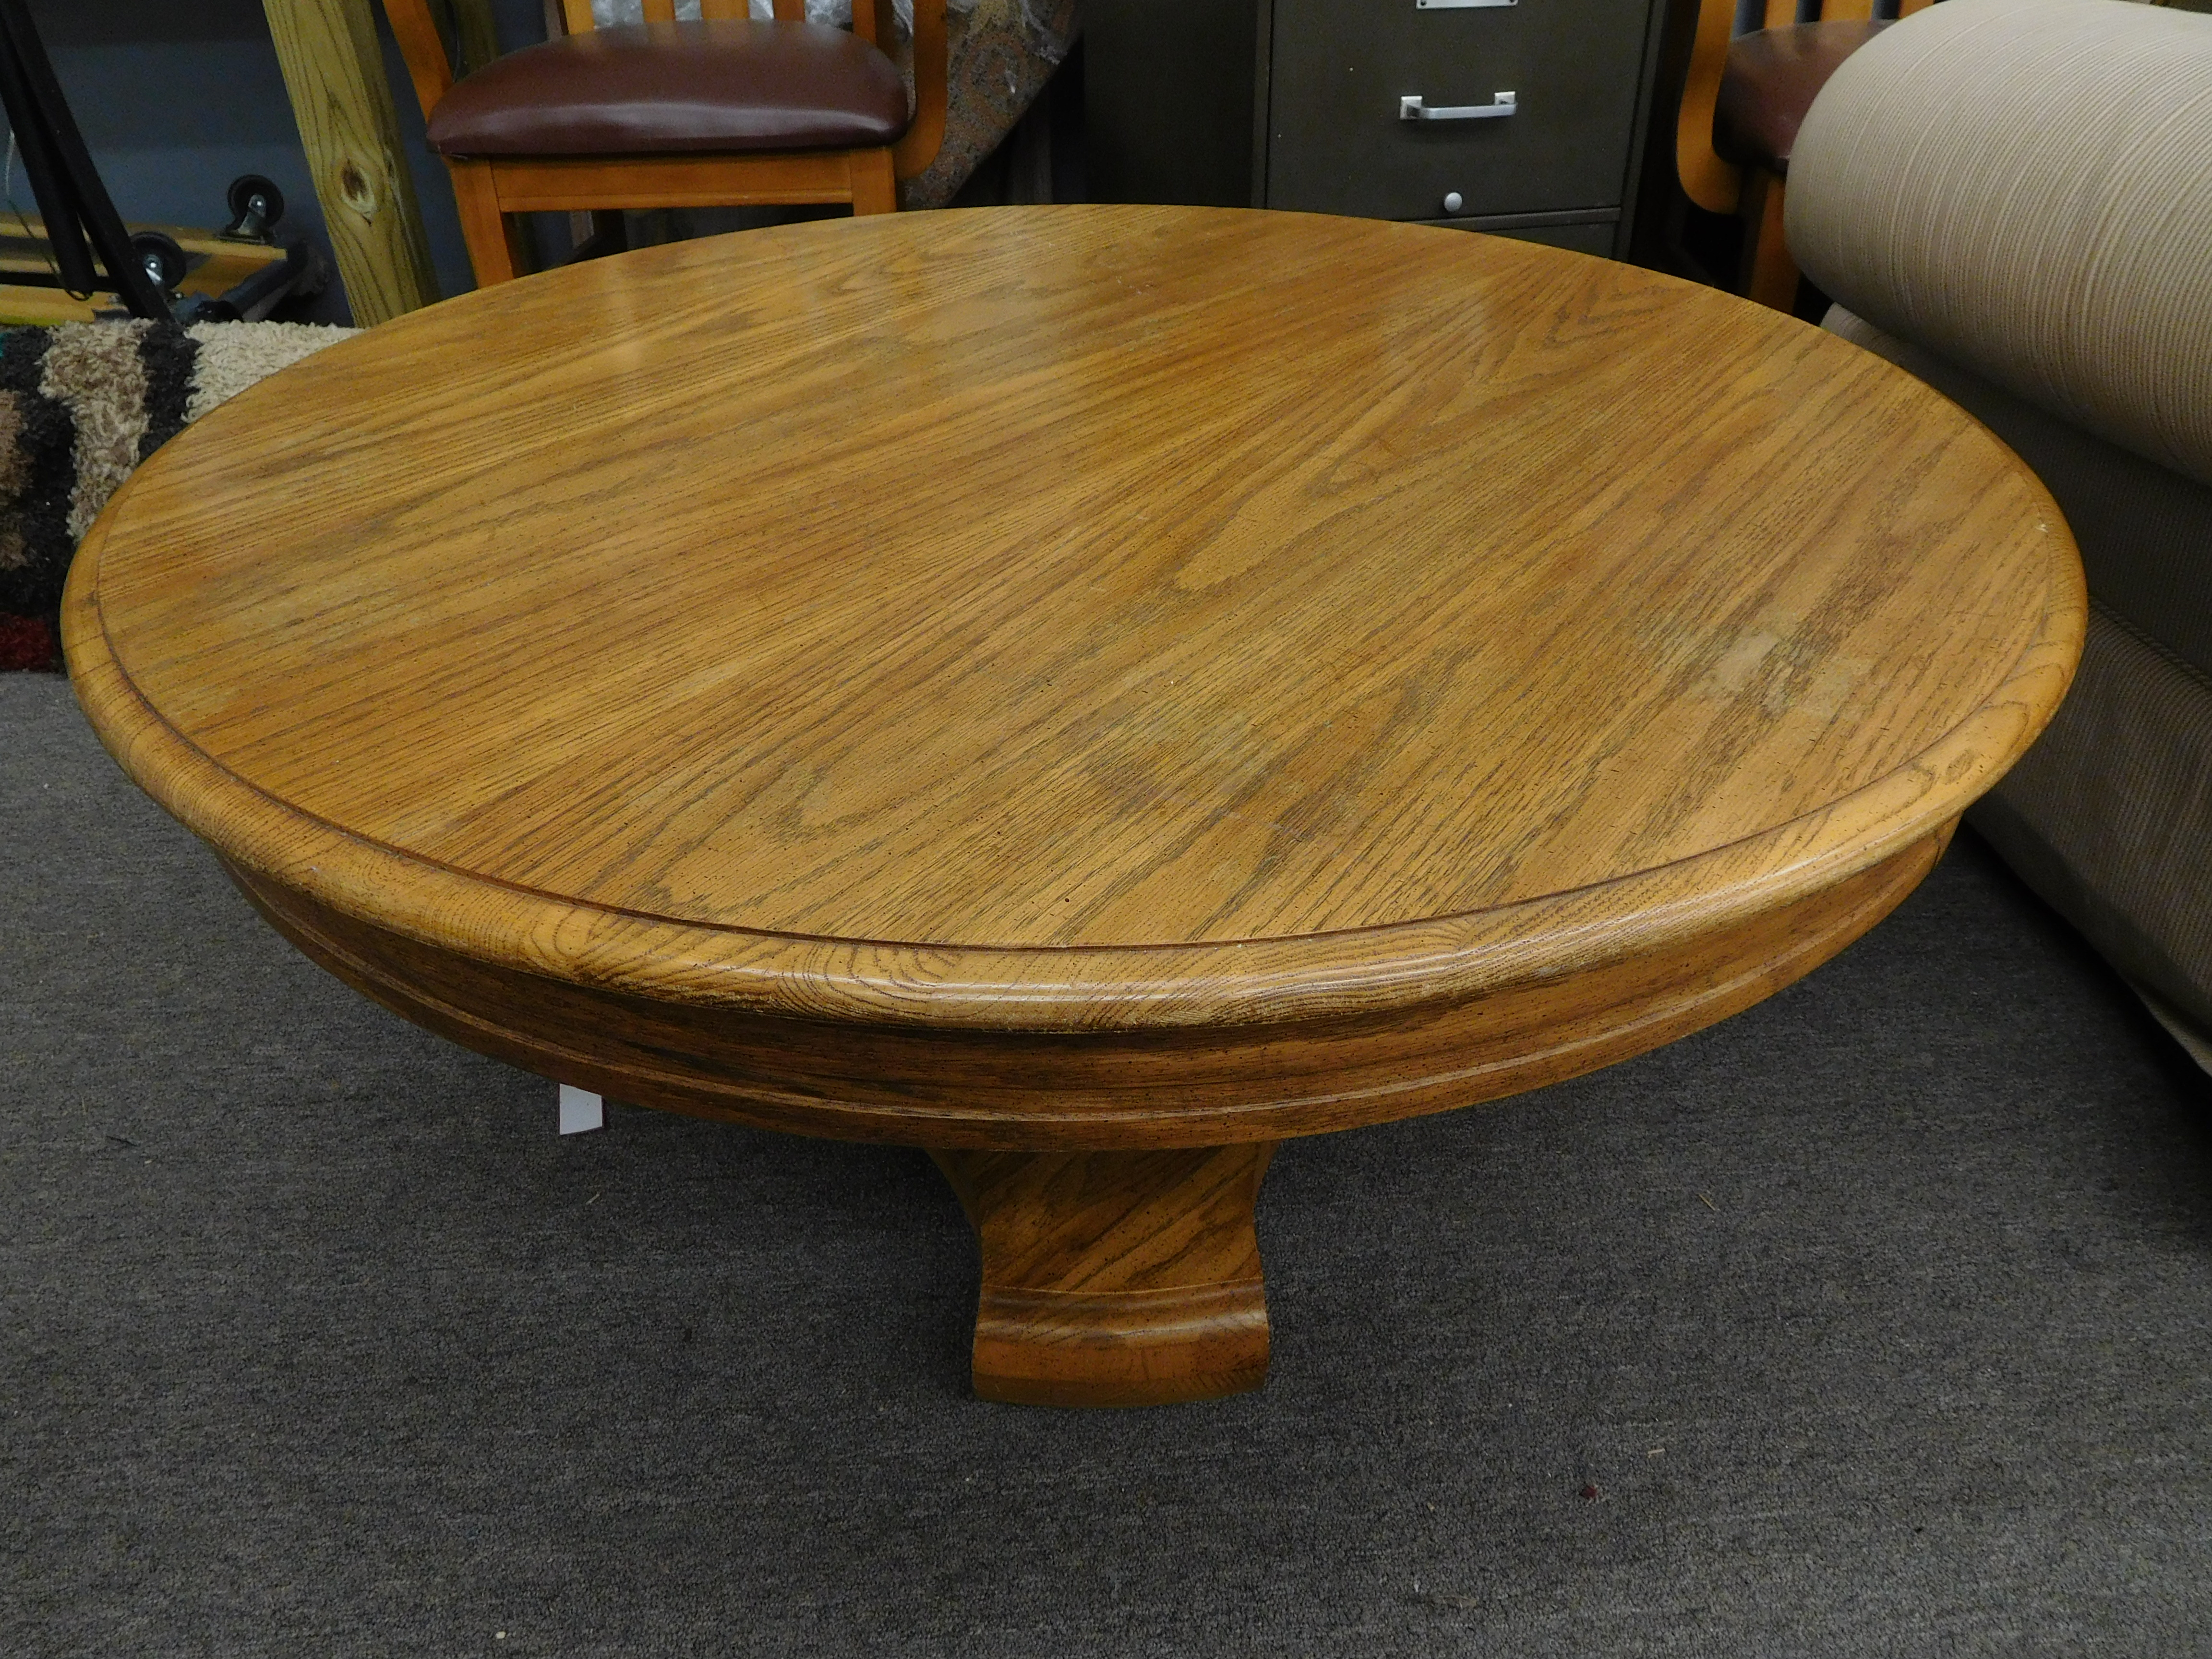 Round Oak Coffee Table with Highly Figured Wood Grain - Nice!